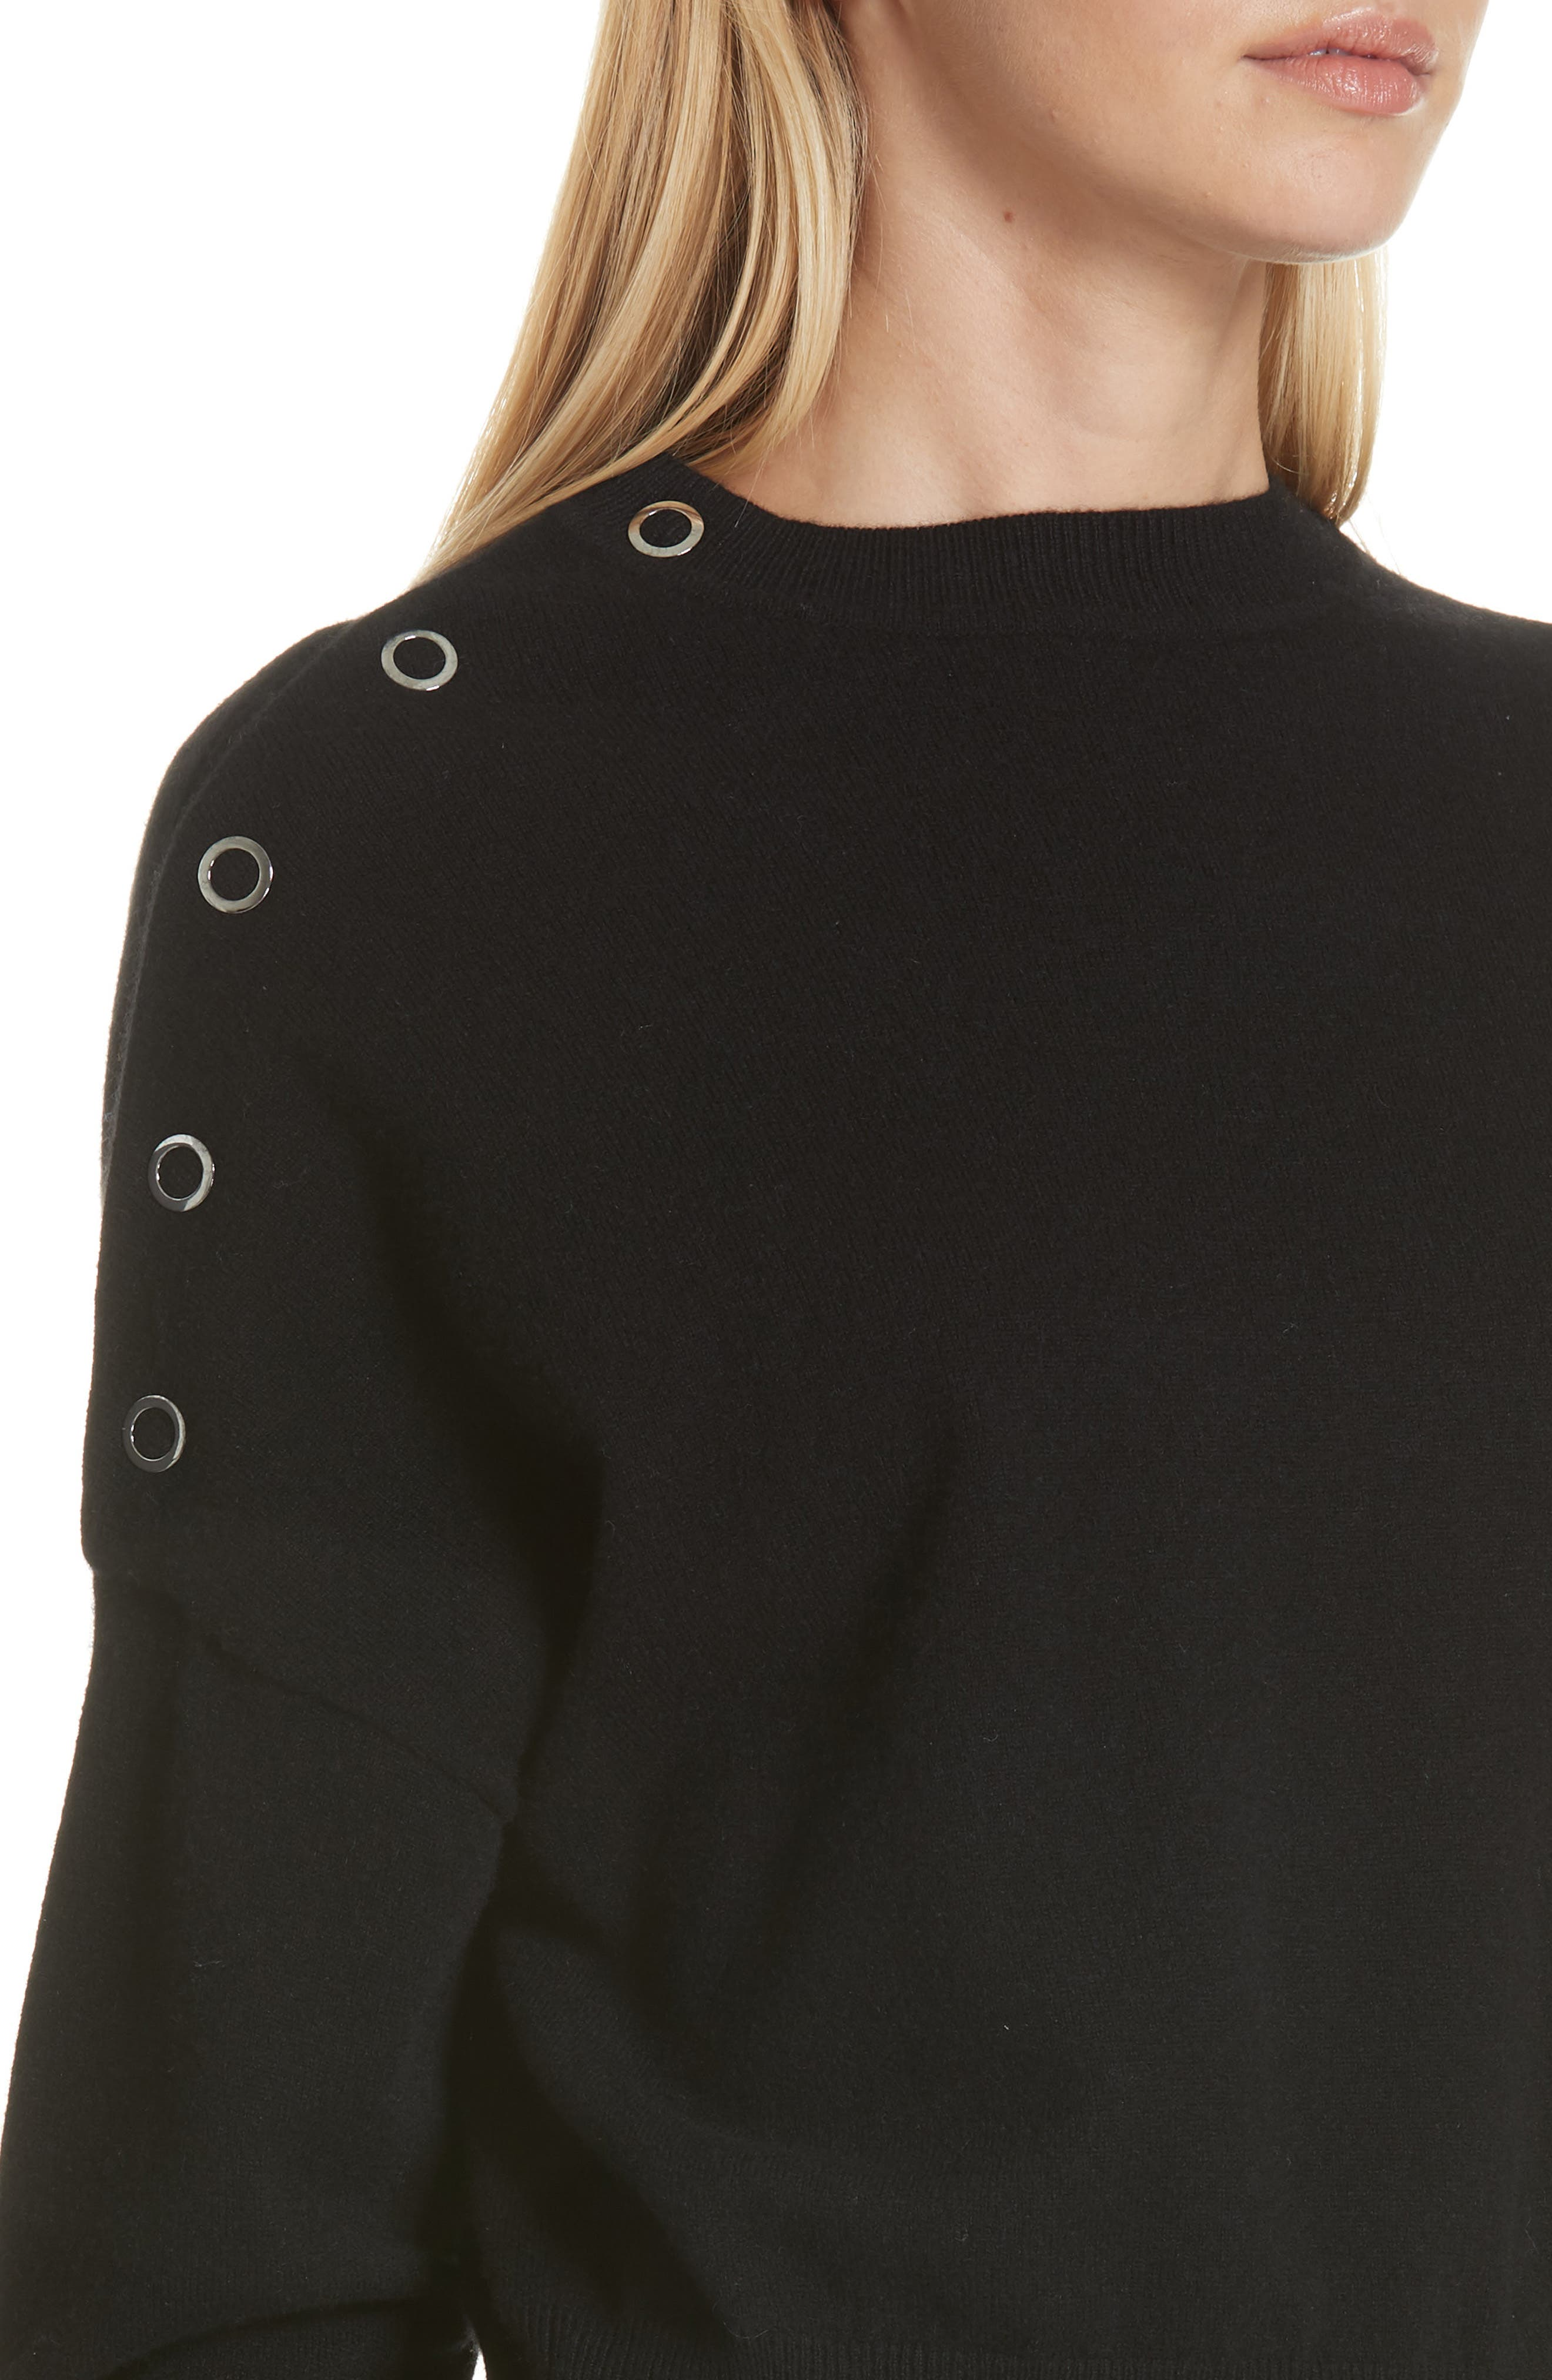 Snap Detail Cashmere Blend Sweater,                             Alternate thumbnail 4, color,                             BLACK